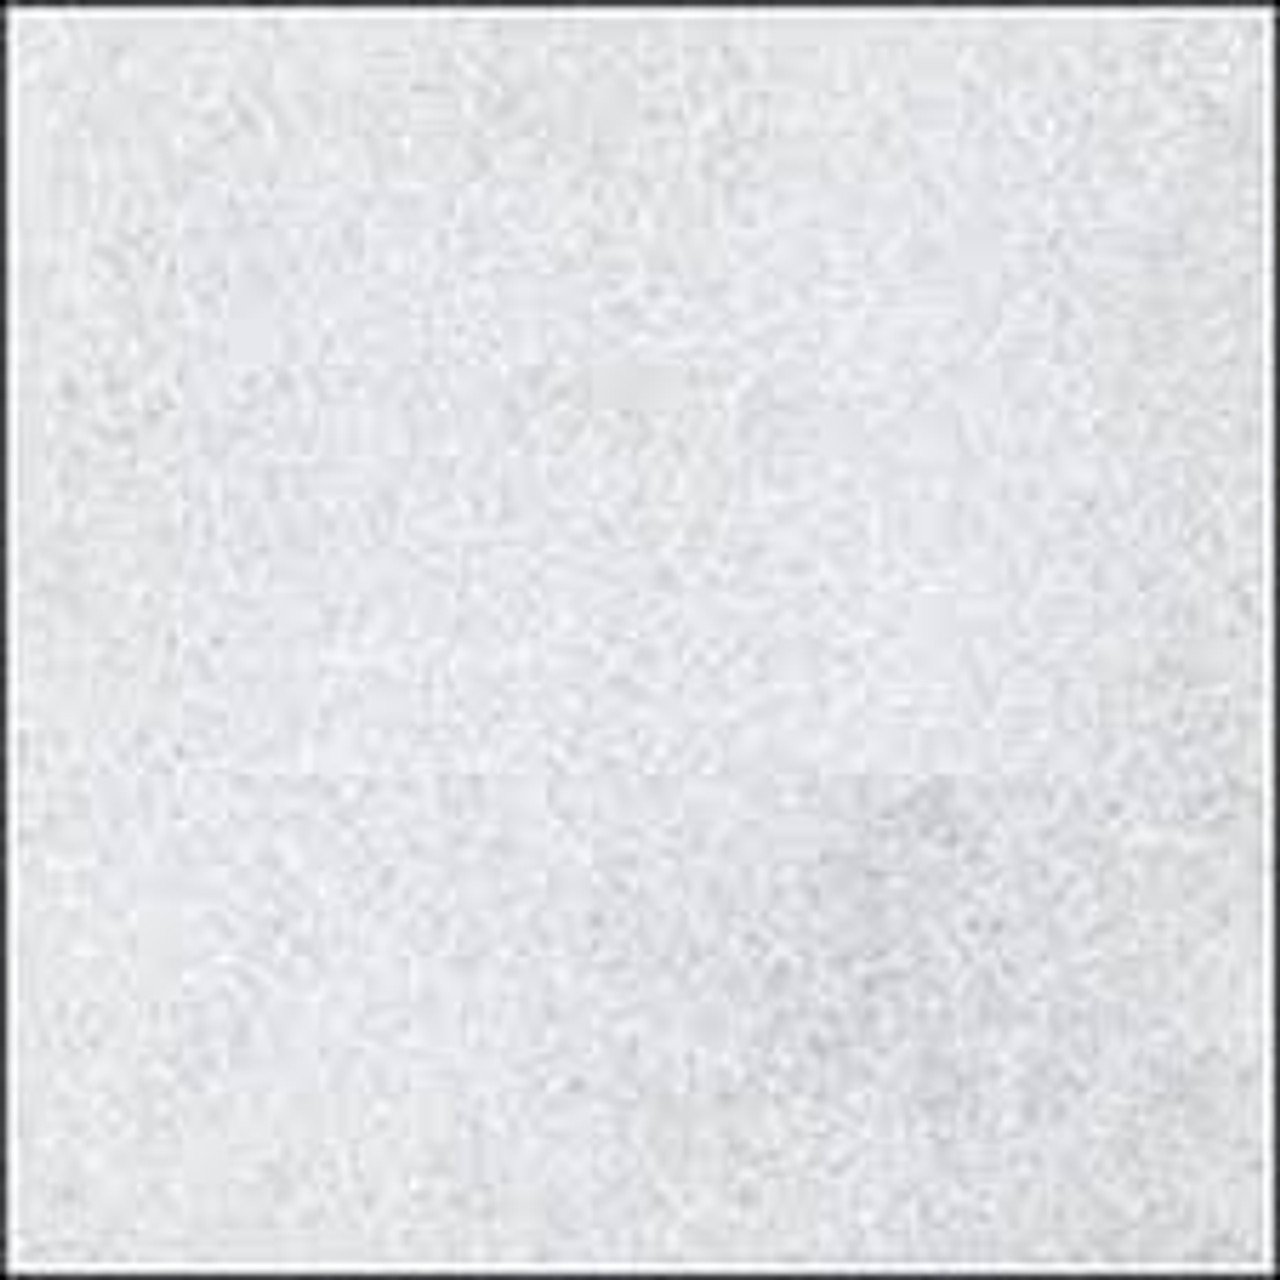 "#3034 Rosco Cinegel 1/4 Grid Cloth, 20x24"", Gels"